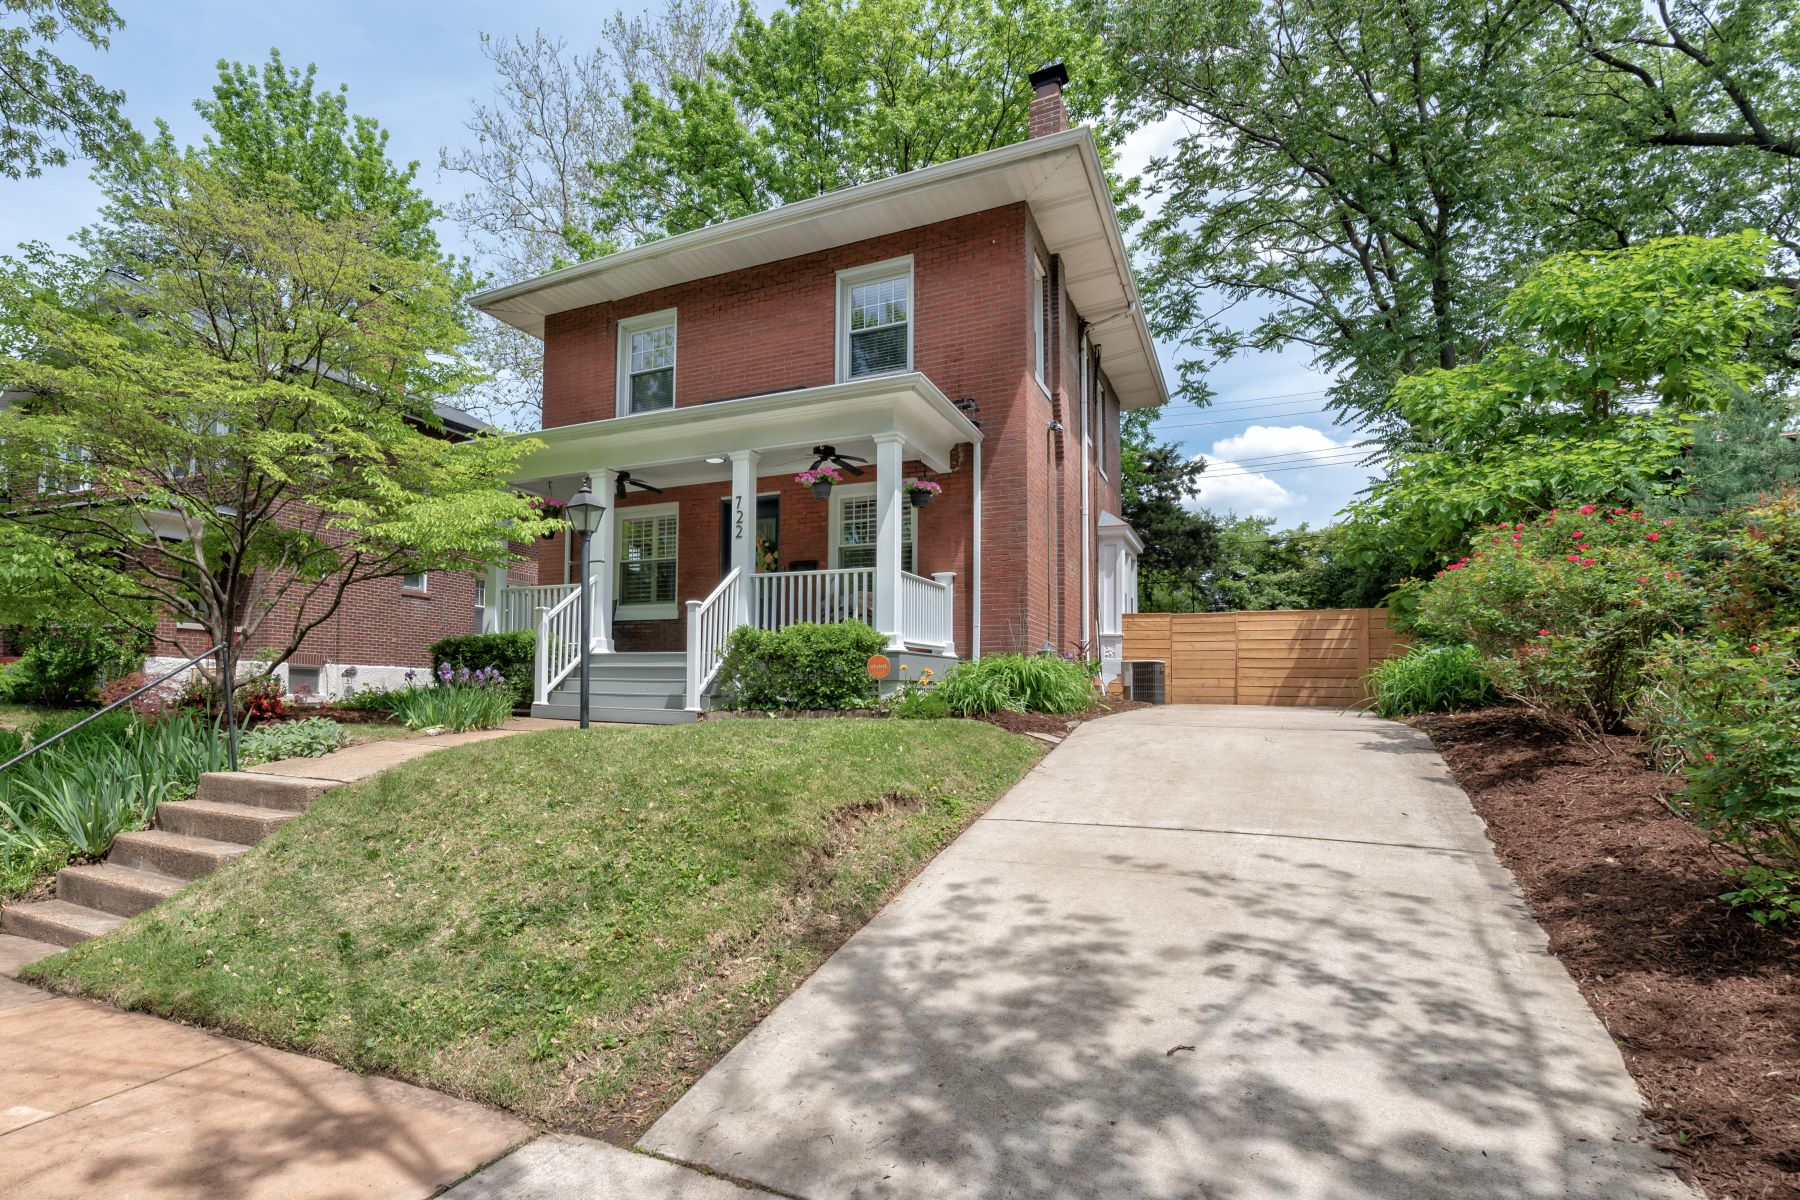 Single Family Home for Sale at University Heights Charmer 722 Harvard Avenue University City, Missouri 63130 United States